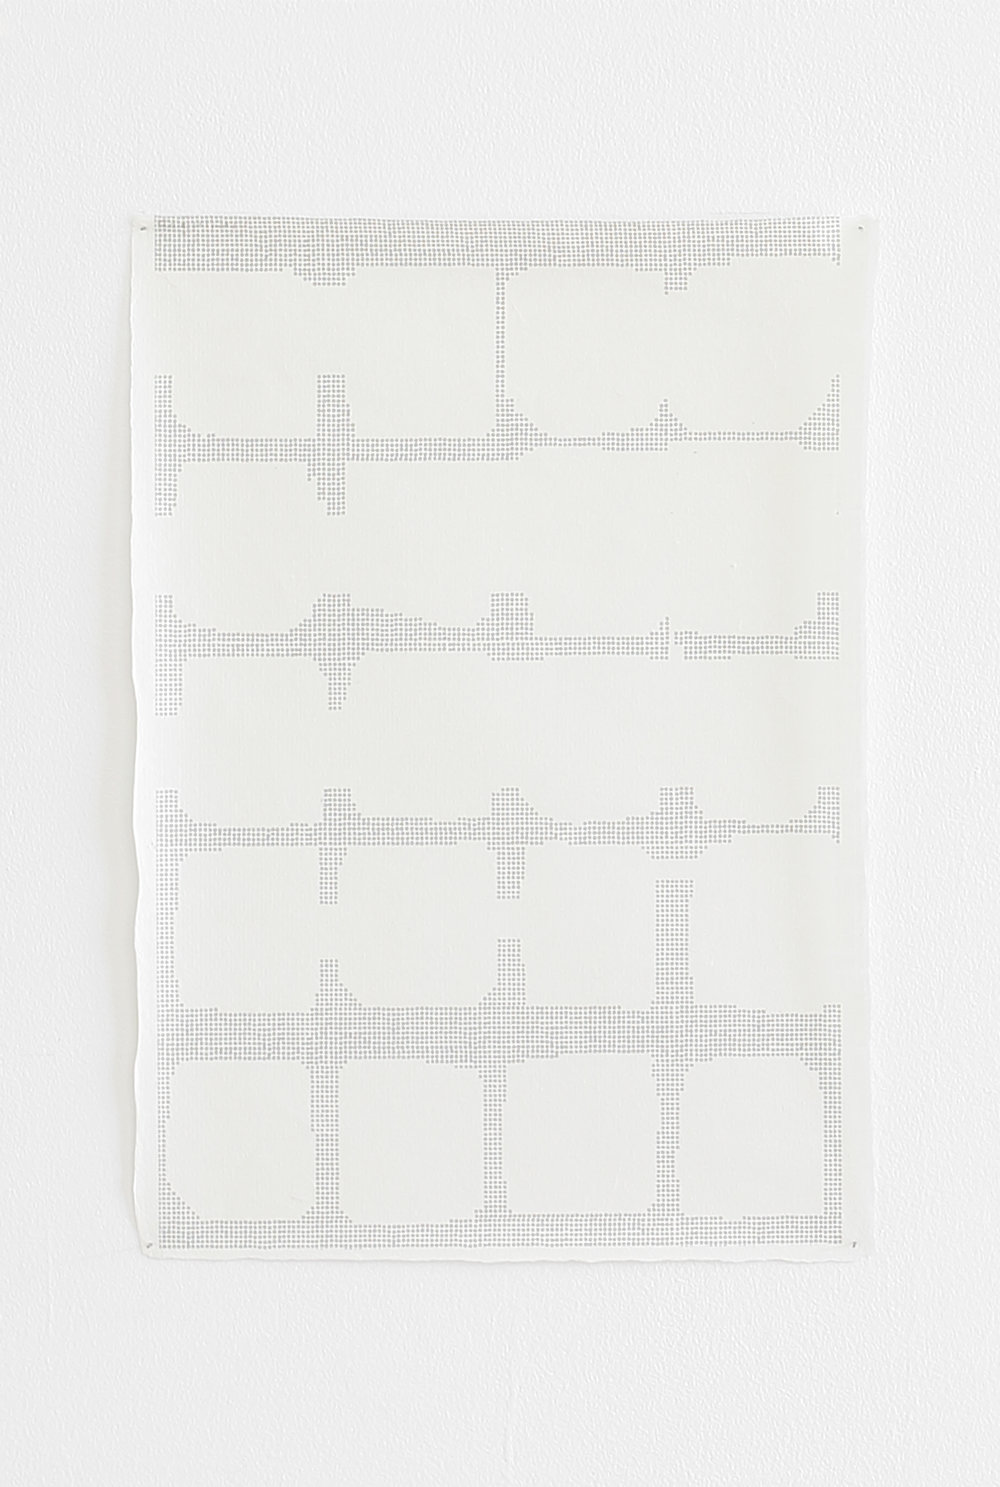 Azadeh Gholizadeh ,  Repetition Figure (1713) , 2017, graphite, print on rice paper